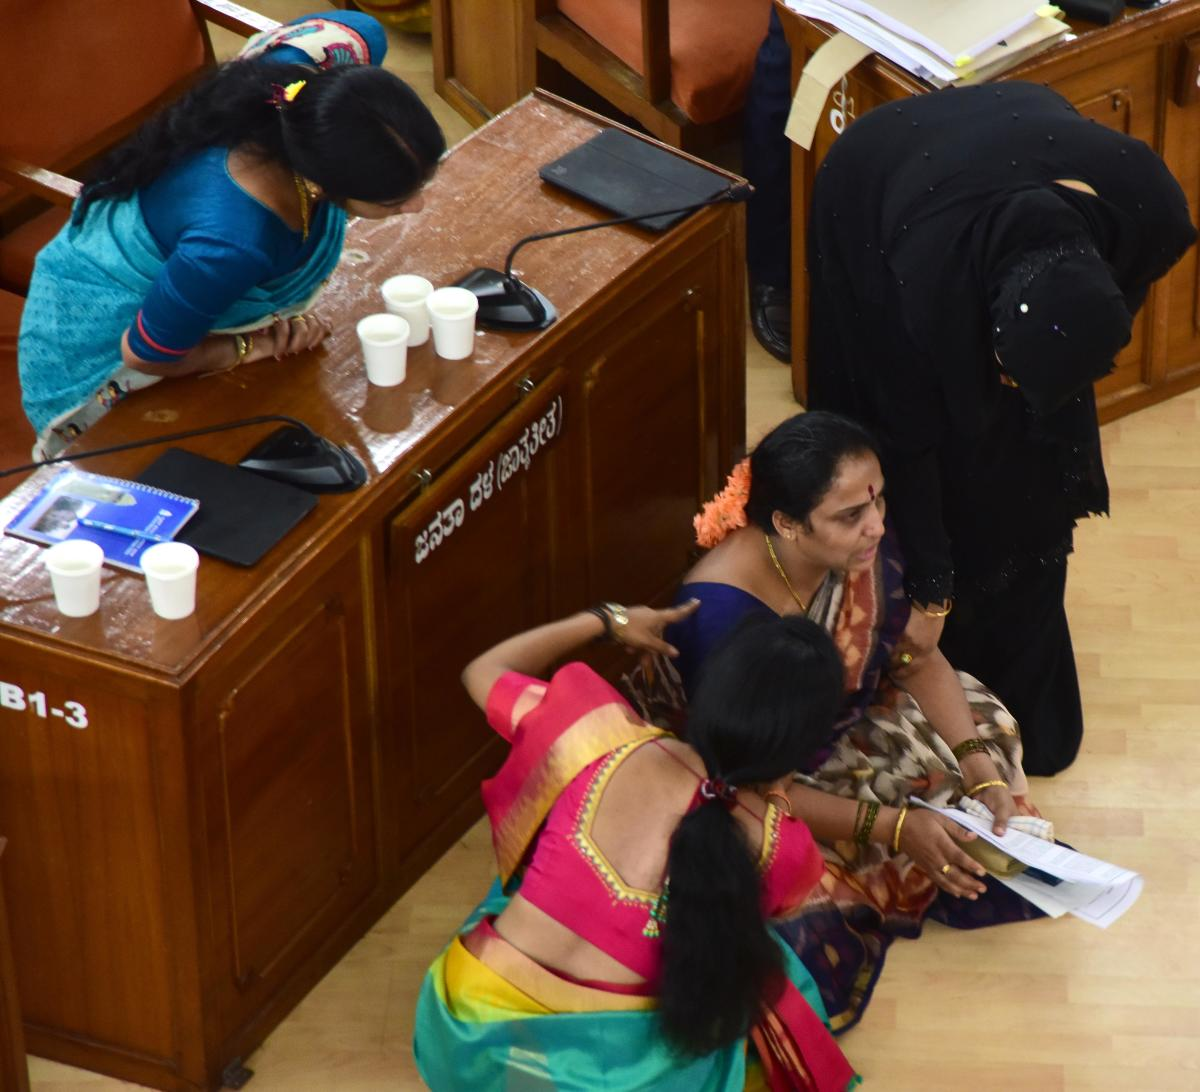 Corporator Manjula Narayanaswamy stages a protest in front of the mayor, claiming she was not allowed to speak in the council. DH PHOTO/CHANDRAHASA KOTEKAR